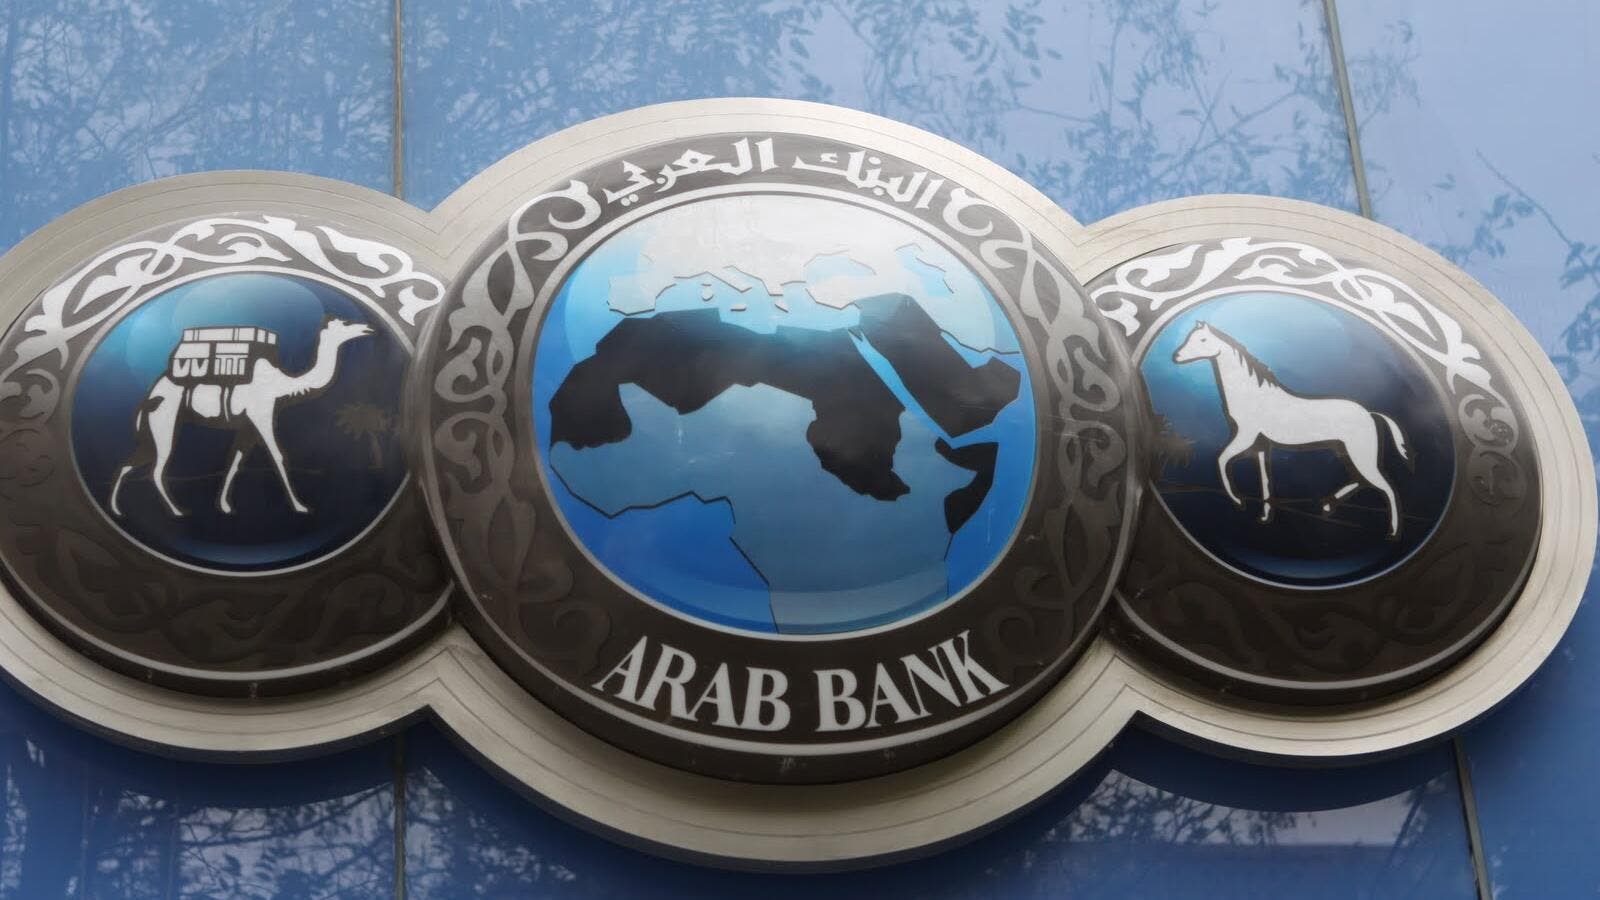 A small number of potential buyers from the Middle East are vying for Oger's stake in Arab Bank, including Saudi Arabia's al-Hokair family. (File photo)